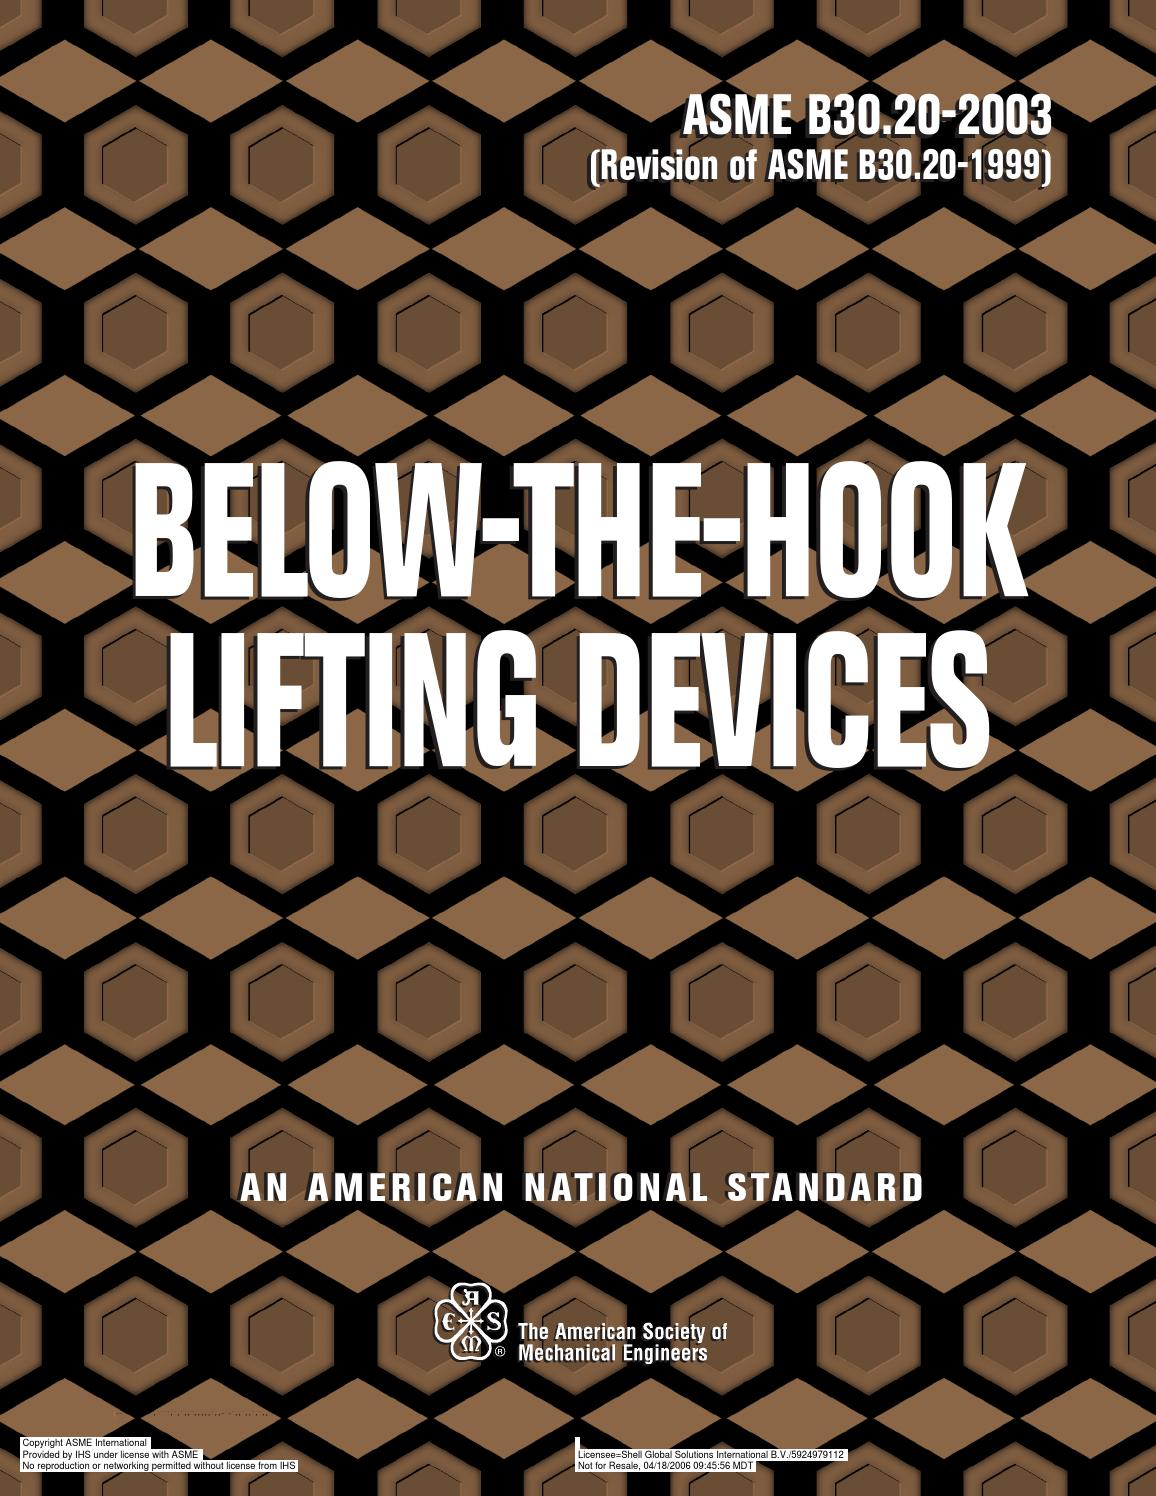 Asme b 30 20 below the hook lifting devices by roland sandoval - issuu